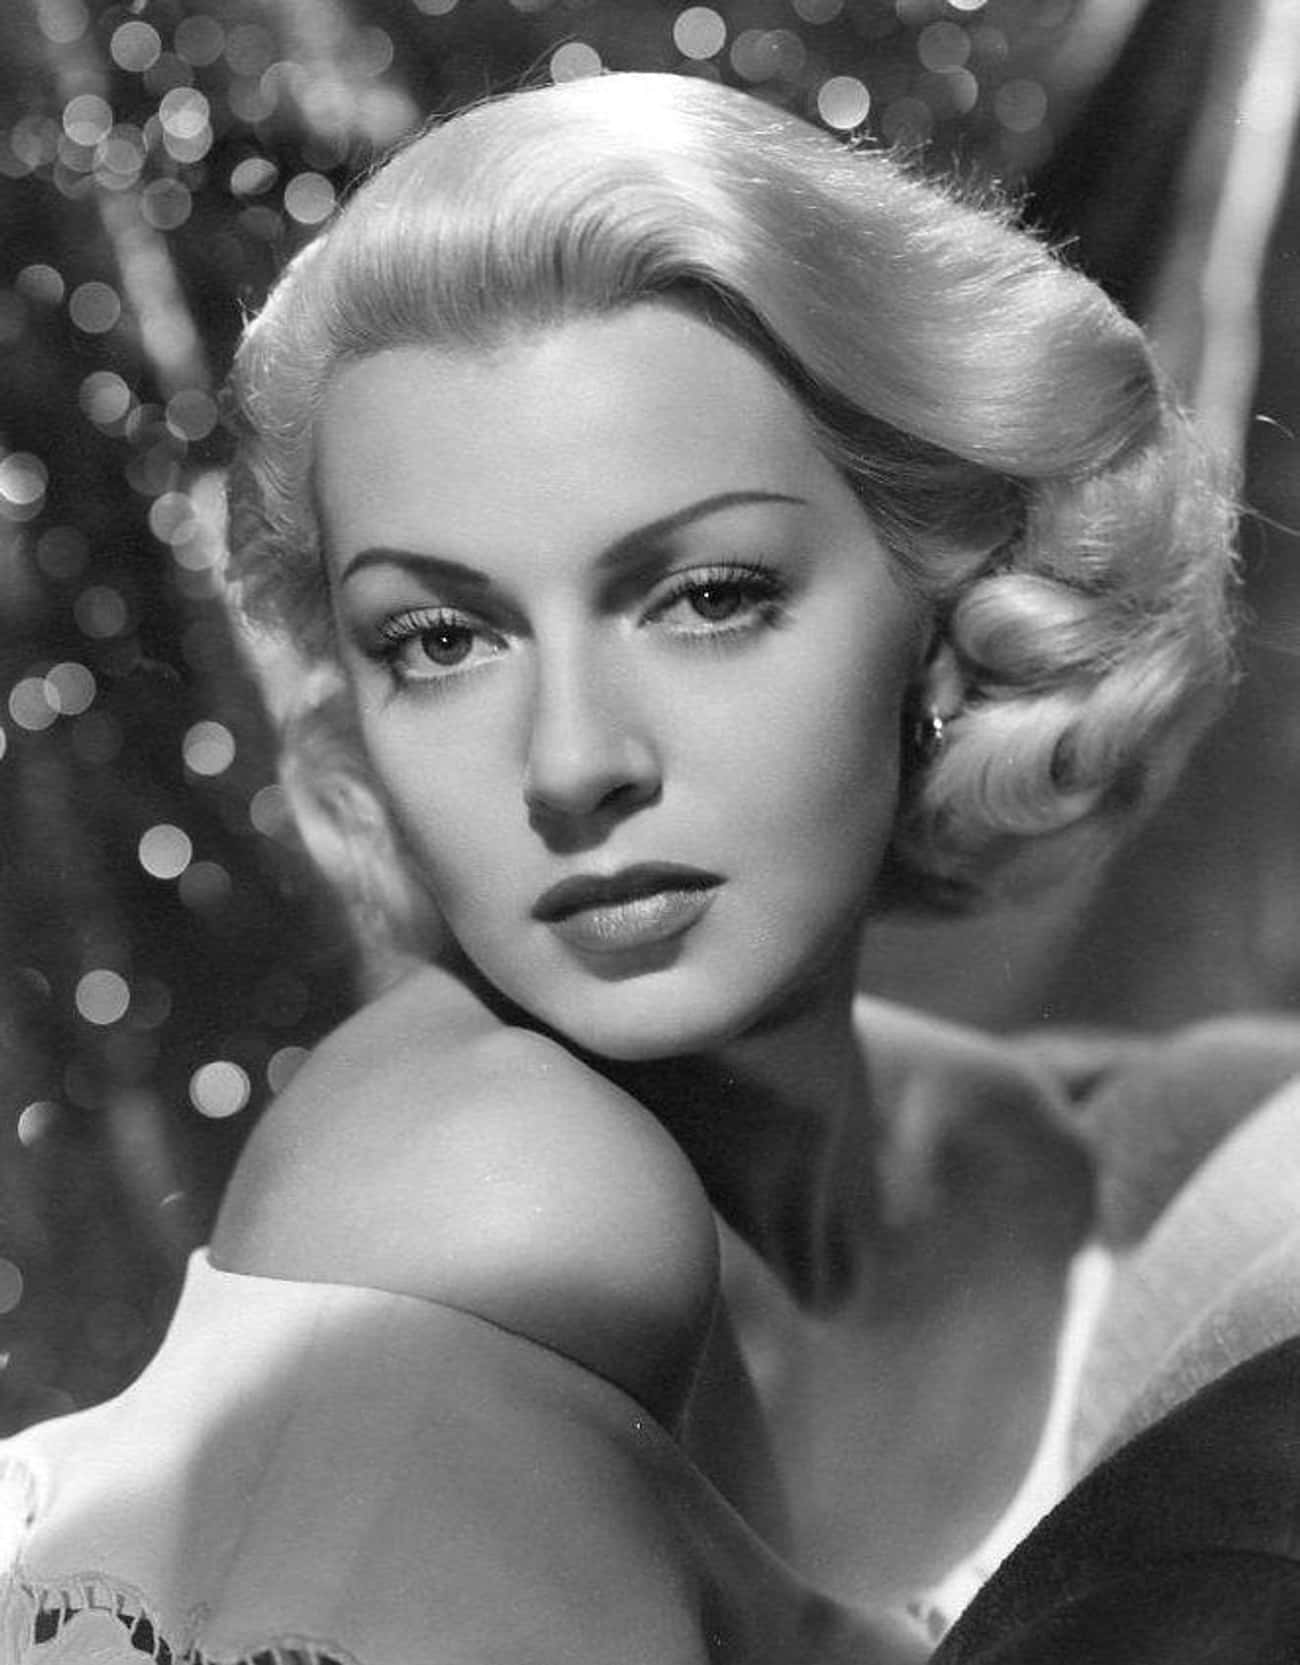 Lana Turner - 8 Marriages